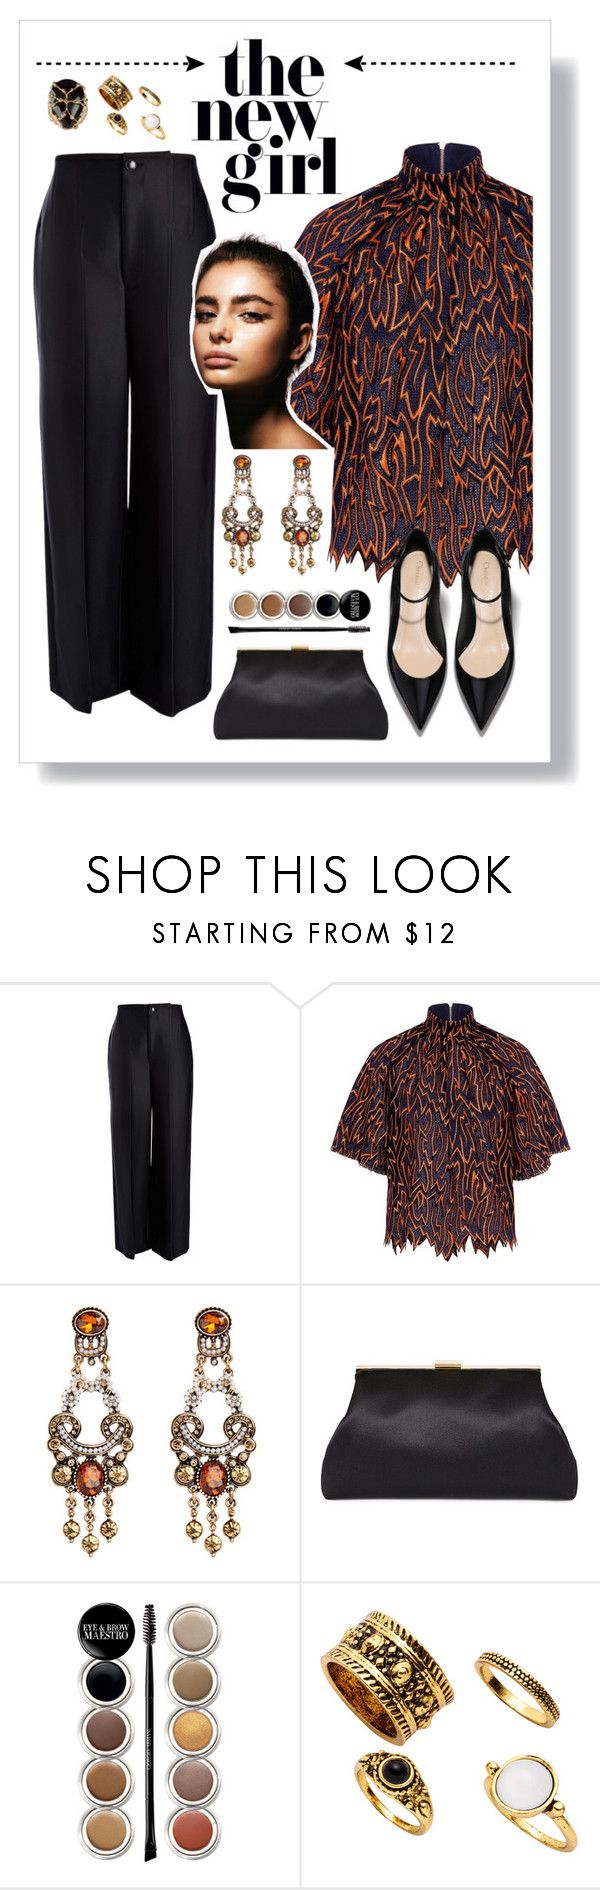 """""""The new girl"""" by yessyzc ❤ liked on Polyvore featuring Joseph, Karen Walker, Giorgio Armani and Rosantica"""